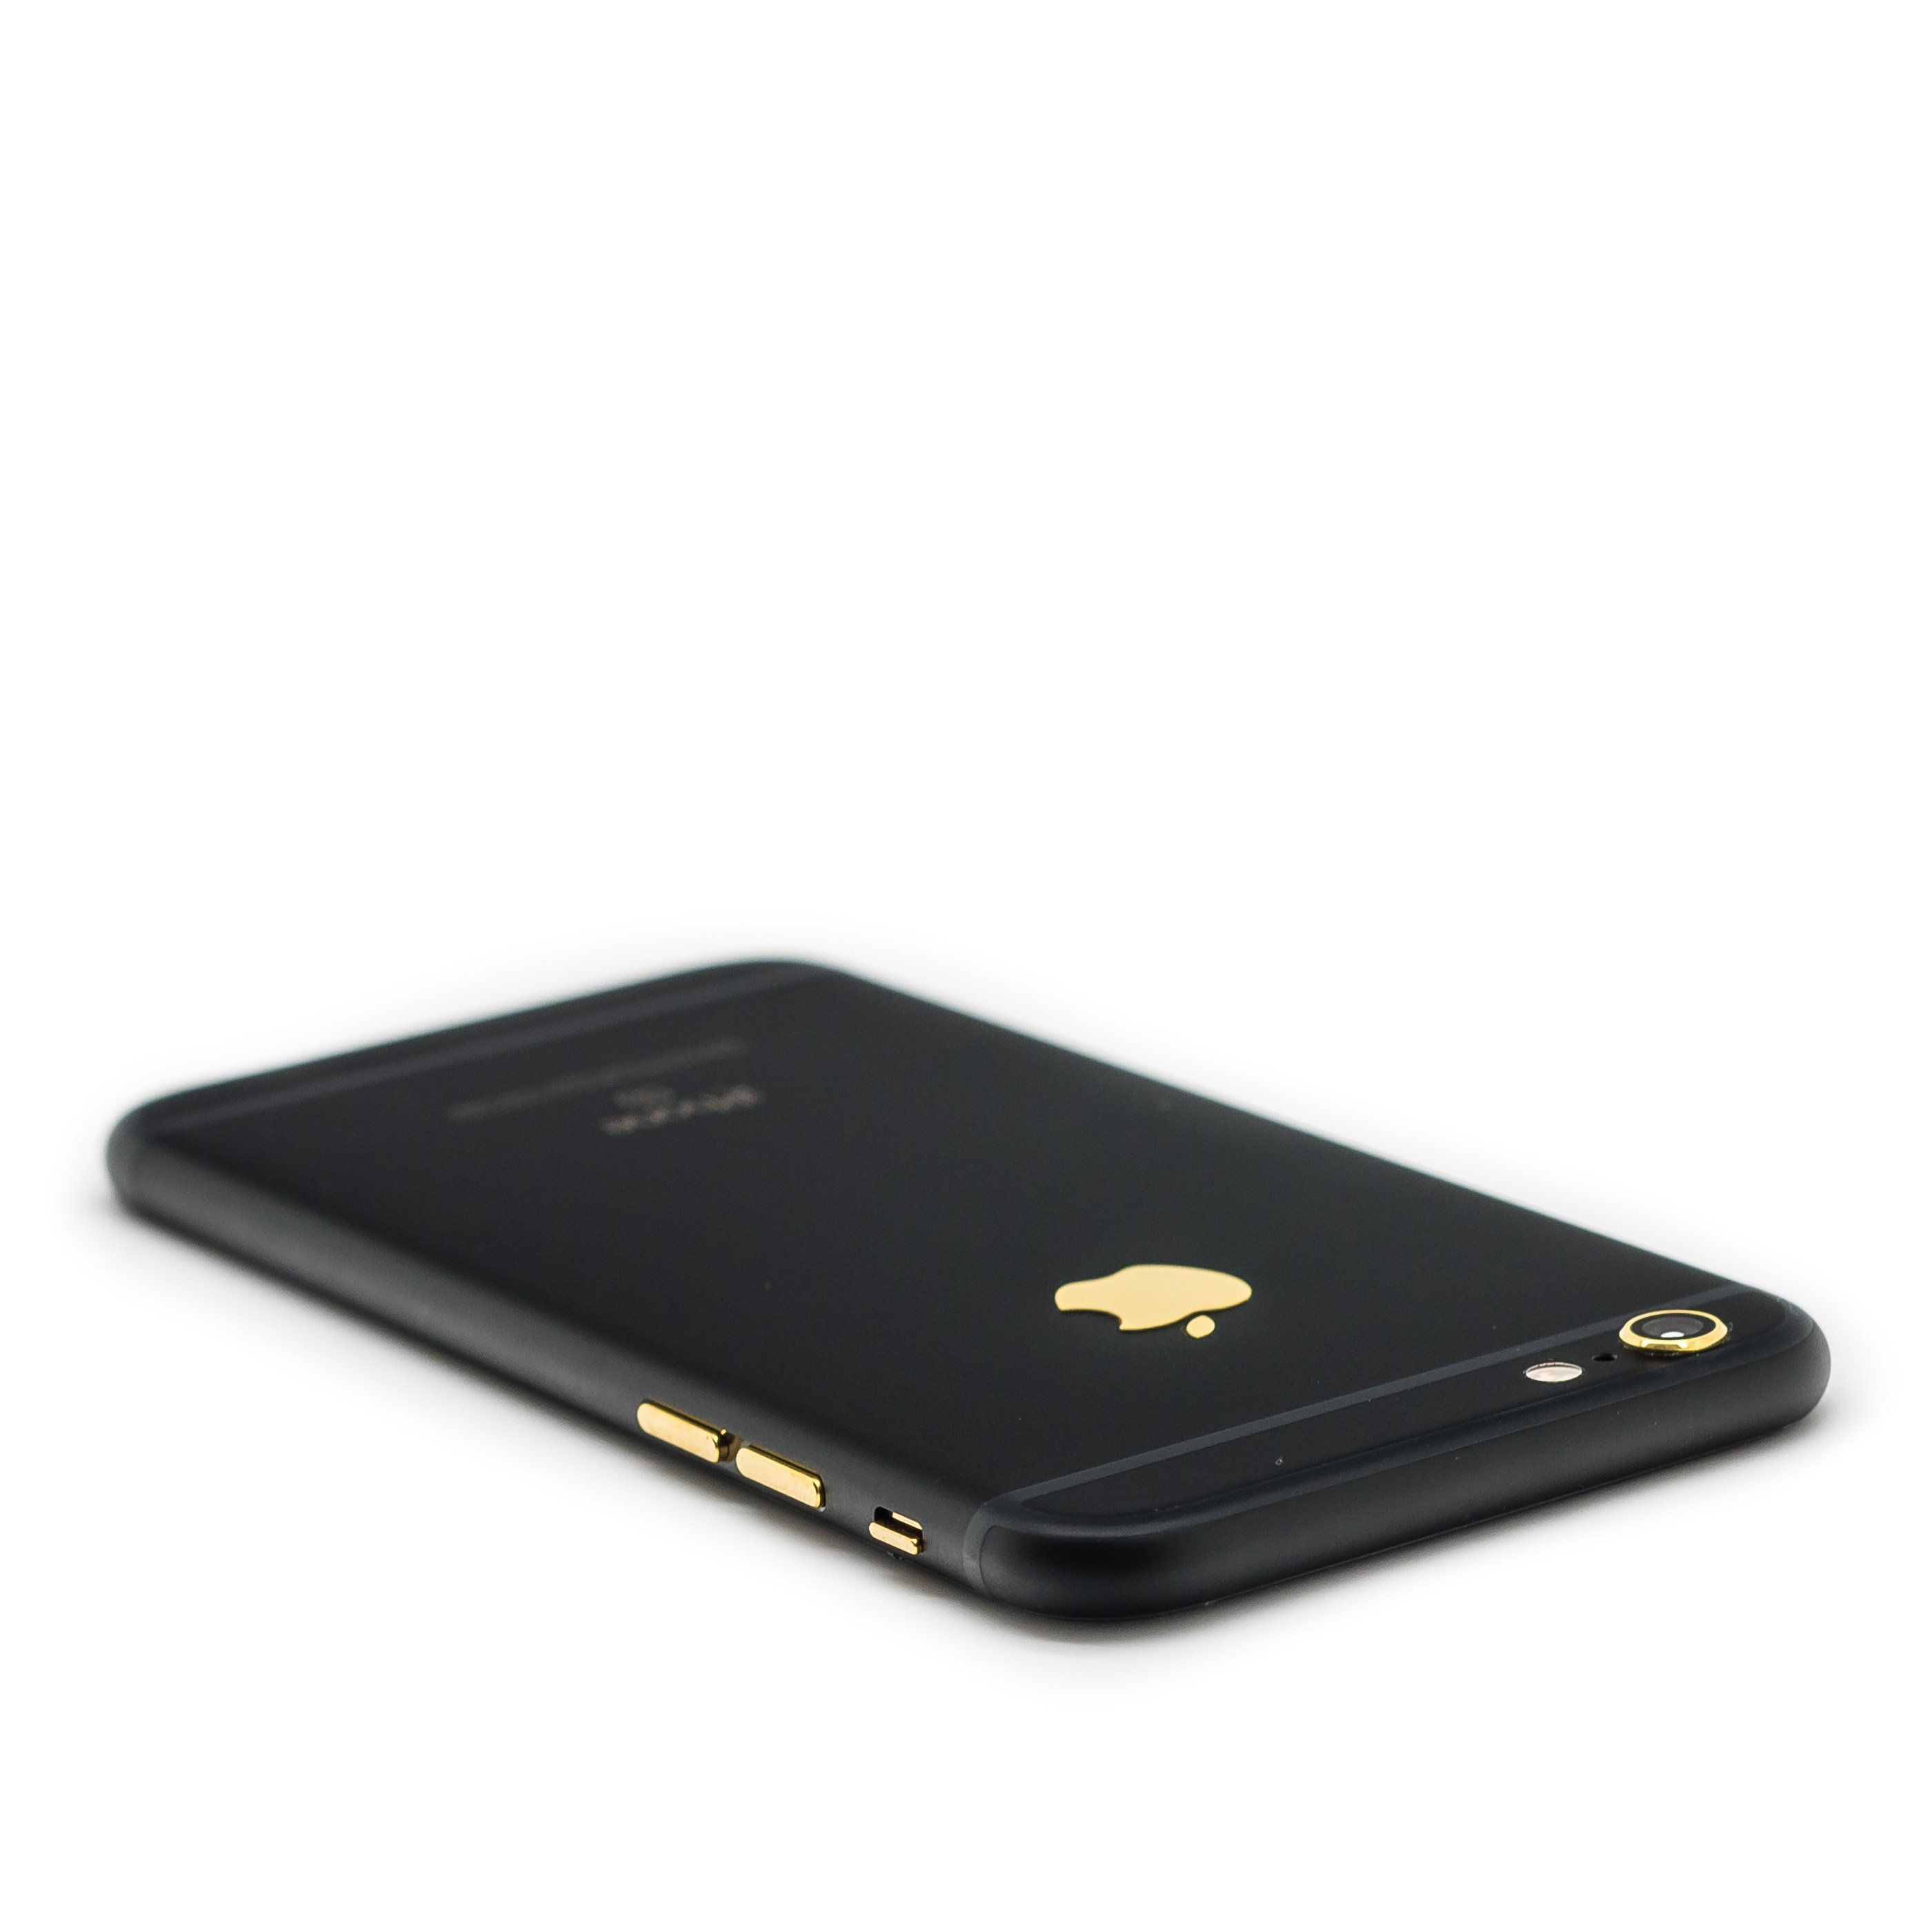 HautePhones specializes in providing the world's most amazing and unique iPhones, here we present you the newest version, iPhone 6s customized in black matte with gold accents (logo and buttons).       Brand new custom iPhone 6sMemory size of choice1 year HautePhones warrantyGSM Factory Unlocked (worldwide)Handheld will be delivered in a custom luxury wooden box